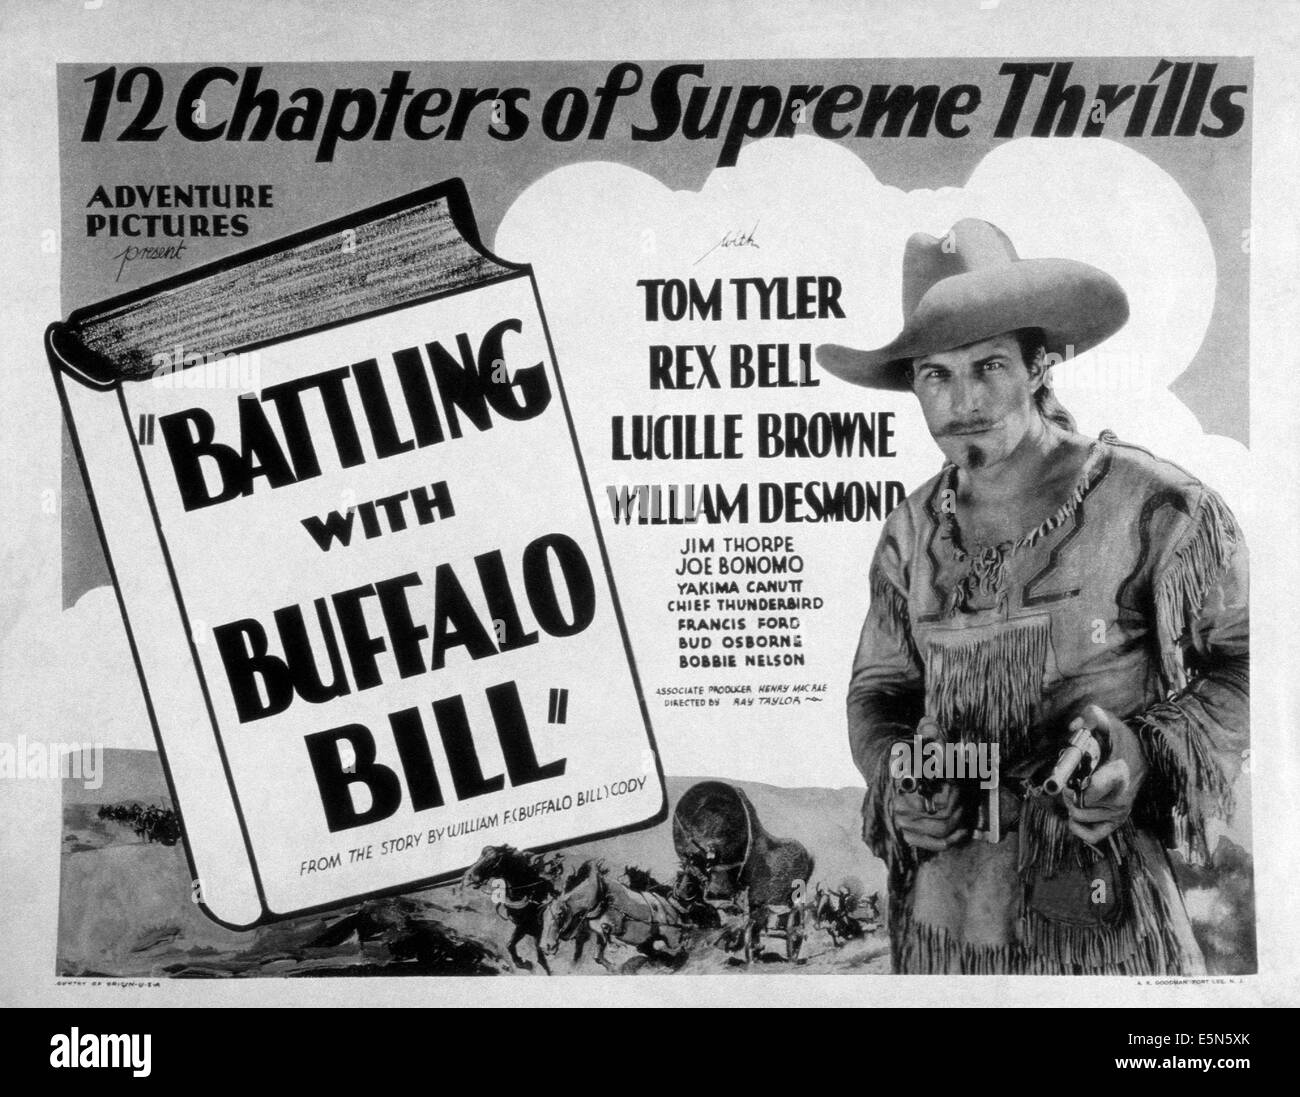 KÄMPFT mit BUFFALO BILL, Tom Tyler wie Bill Cody, 1931 Büffel Stockbild